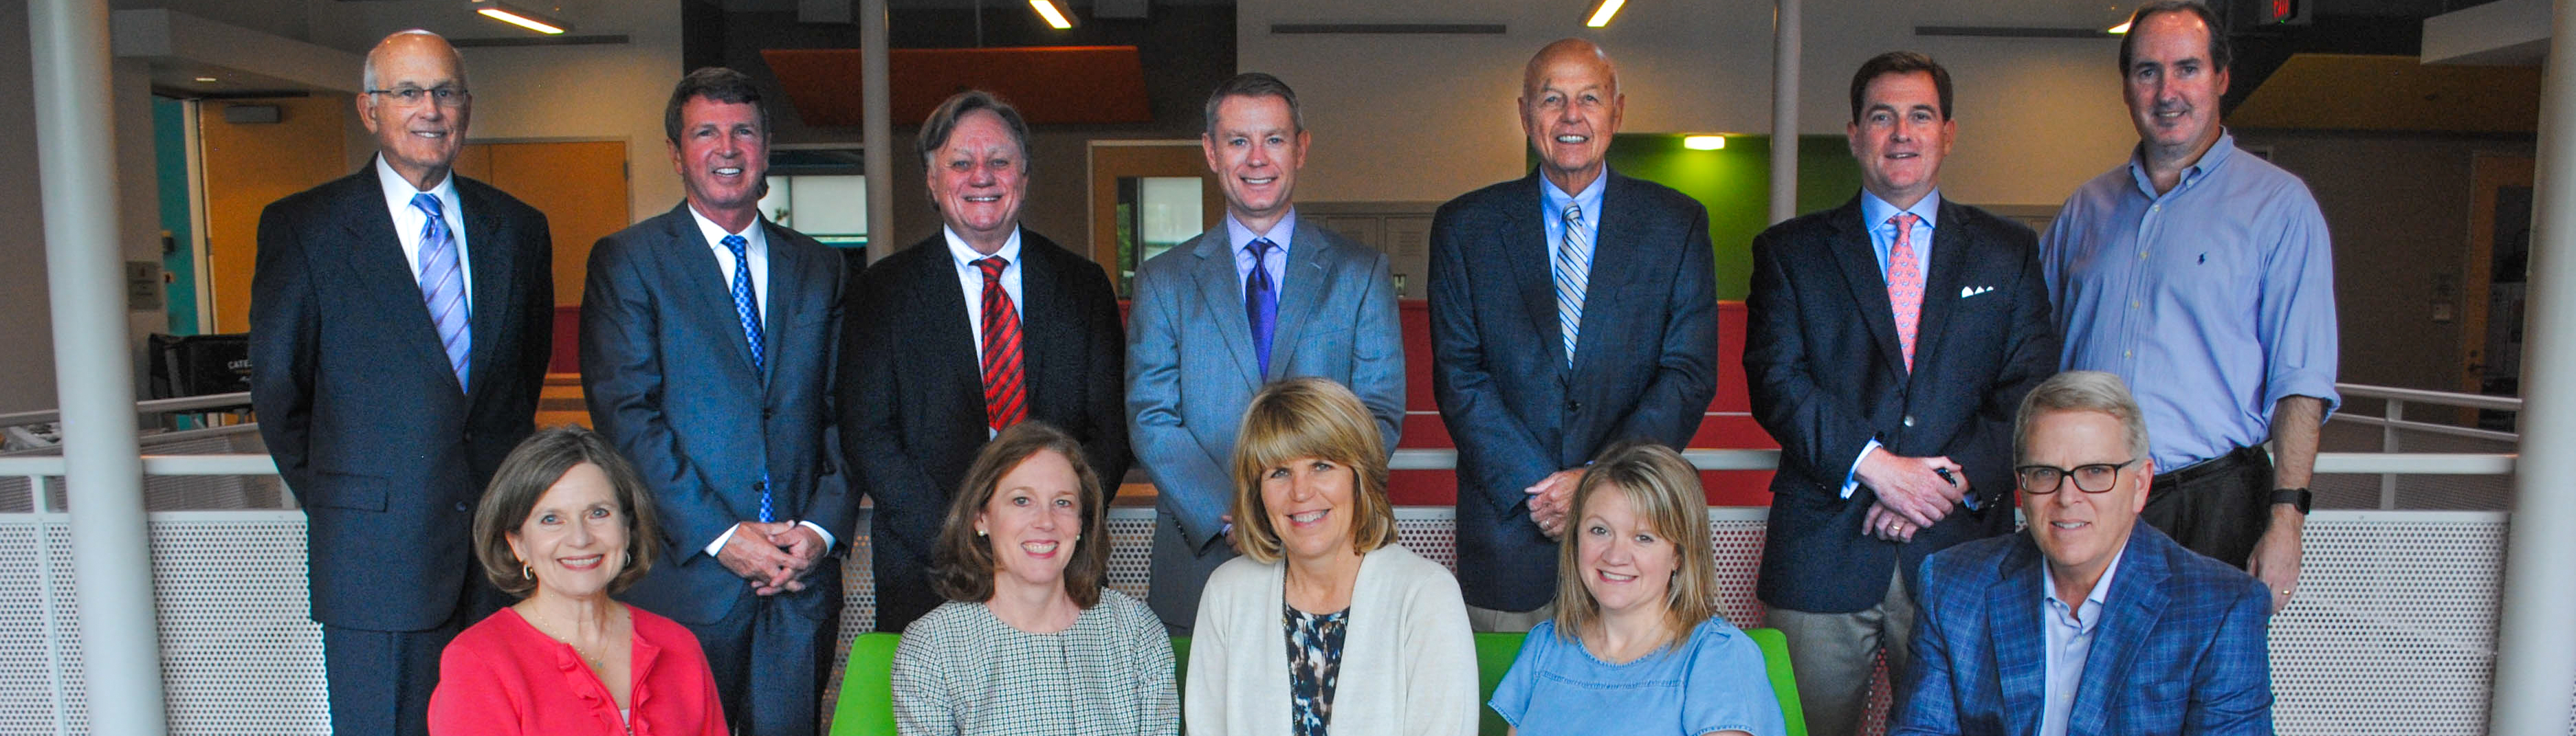 Board of Trustees for 2017-18